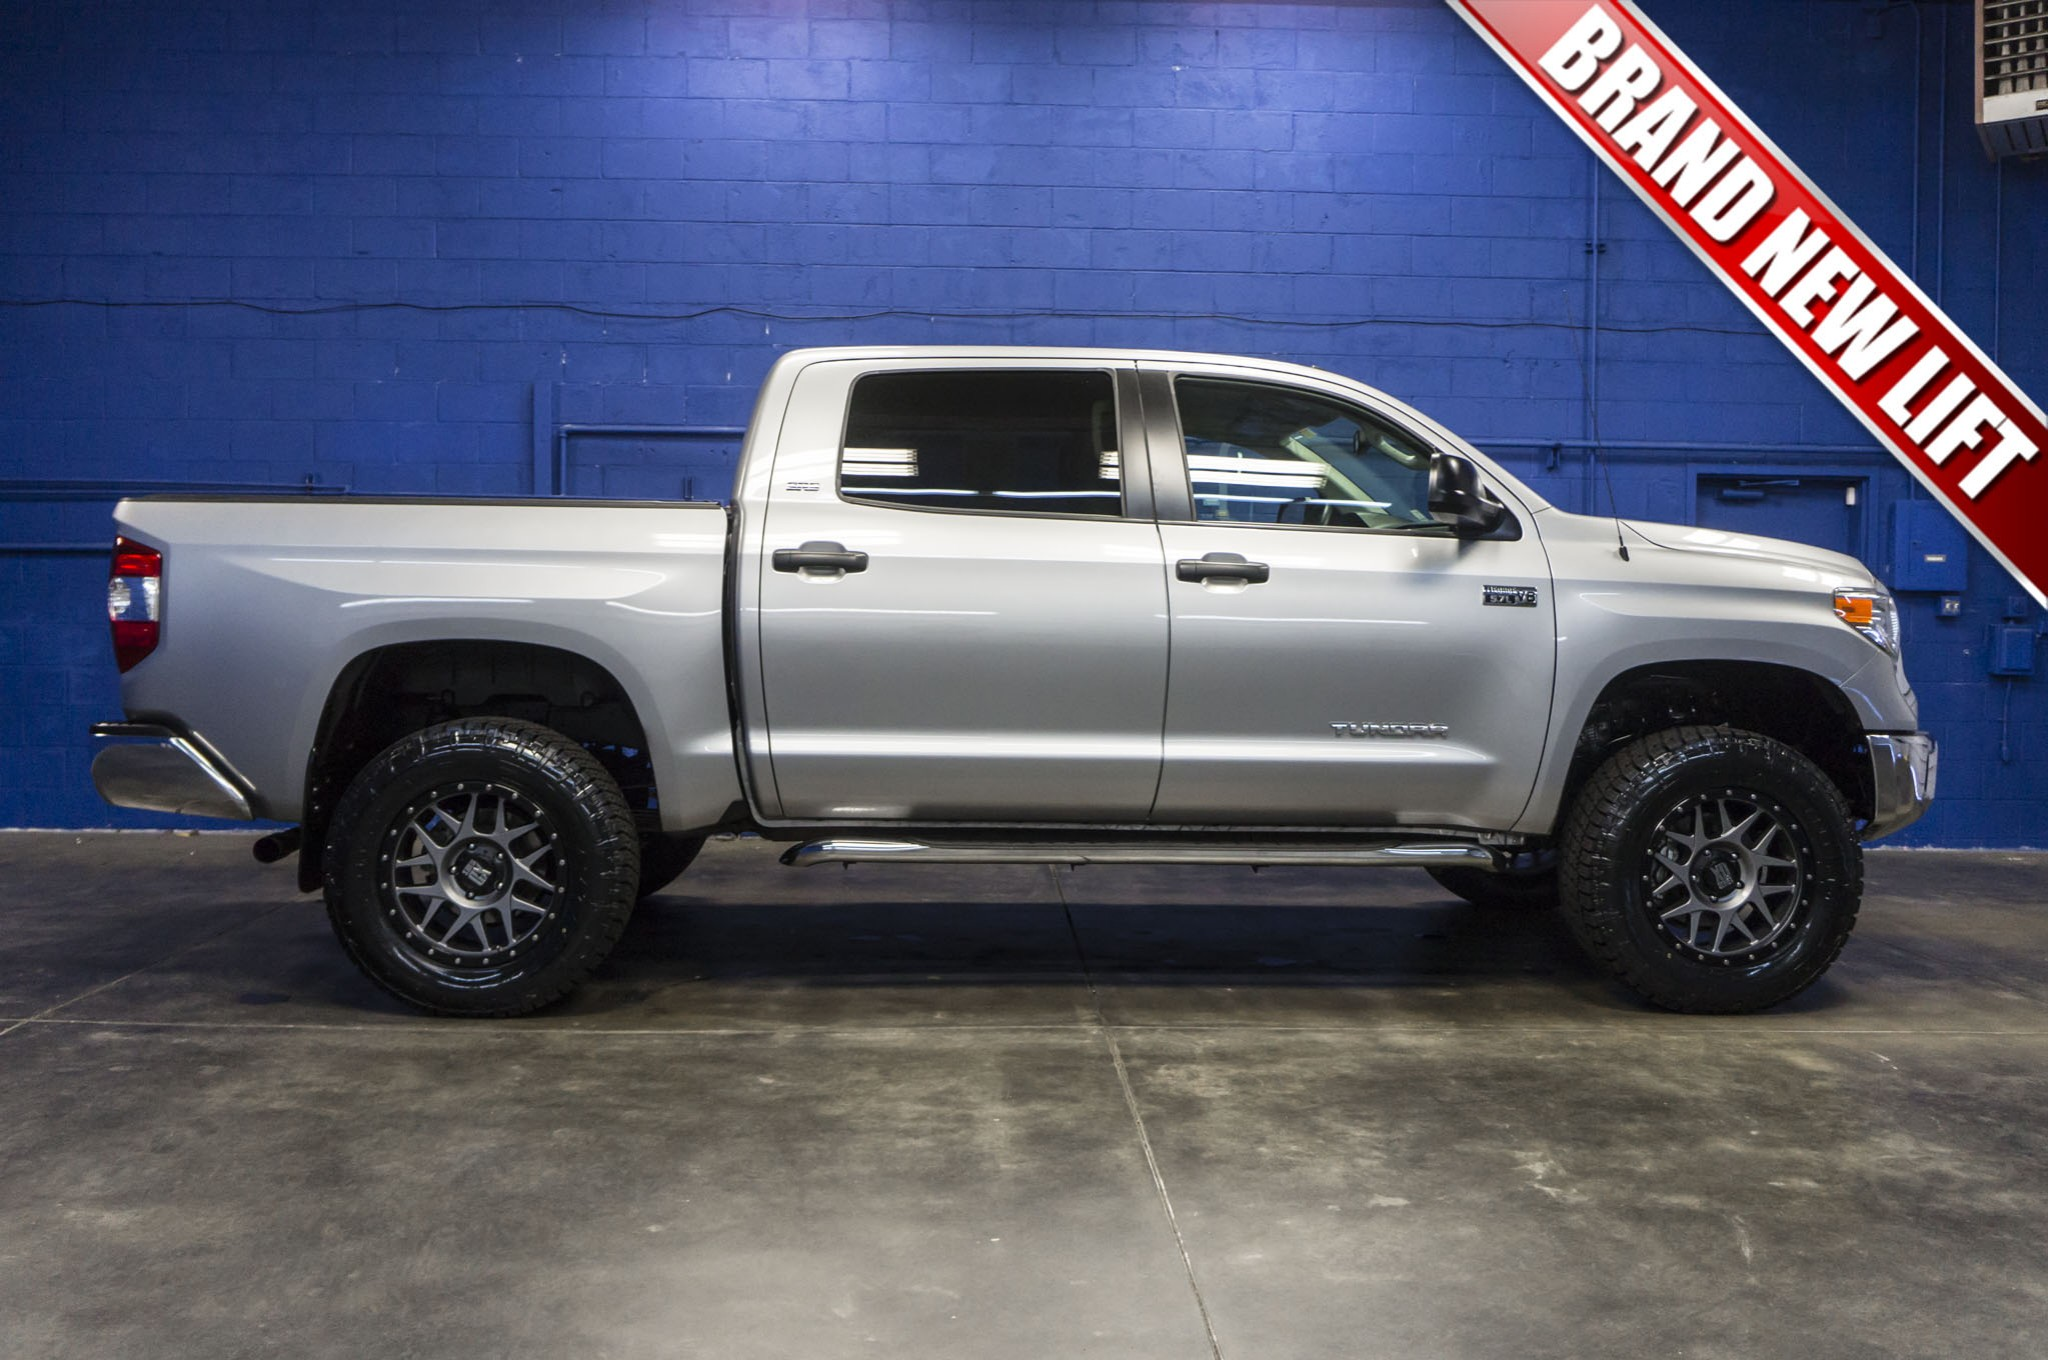 used lifted 2015 toyota tundra sr5 4x4 truck for sale 34202. Black Bedroom Furniture Sets. Home Design Ideas